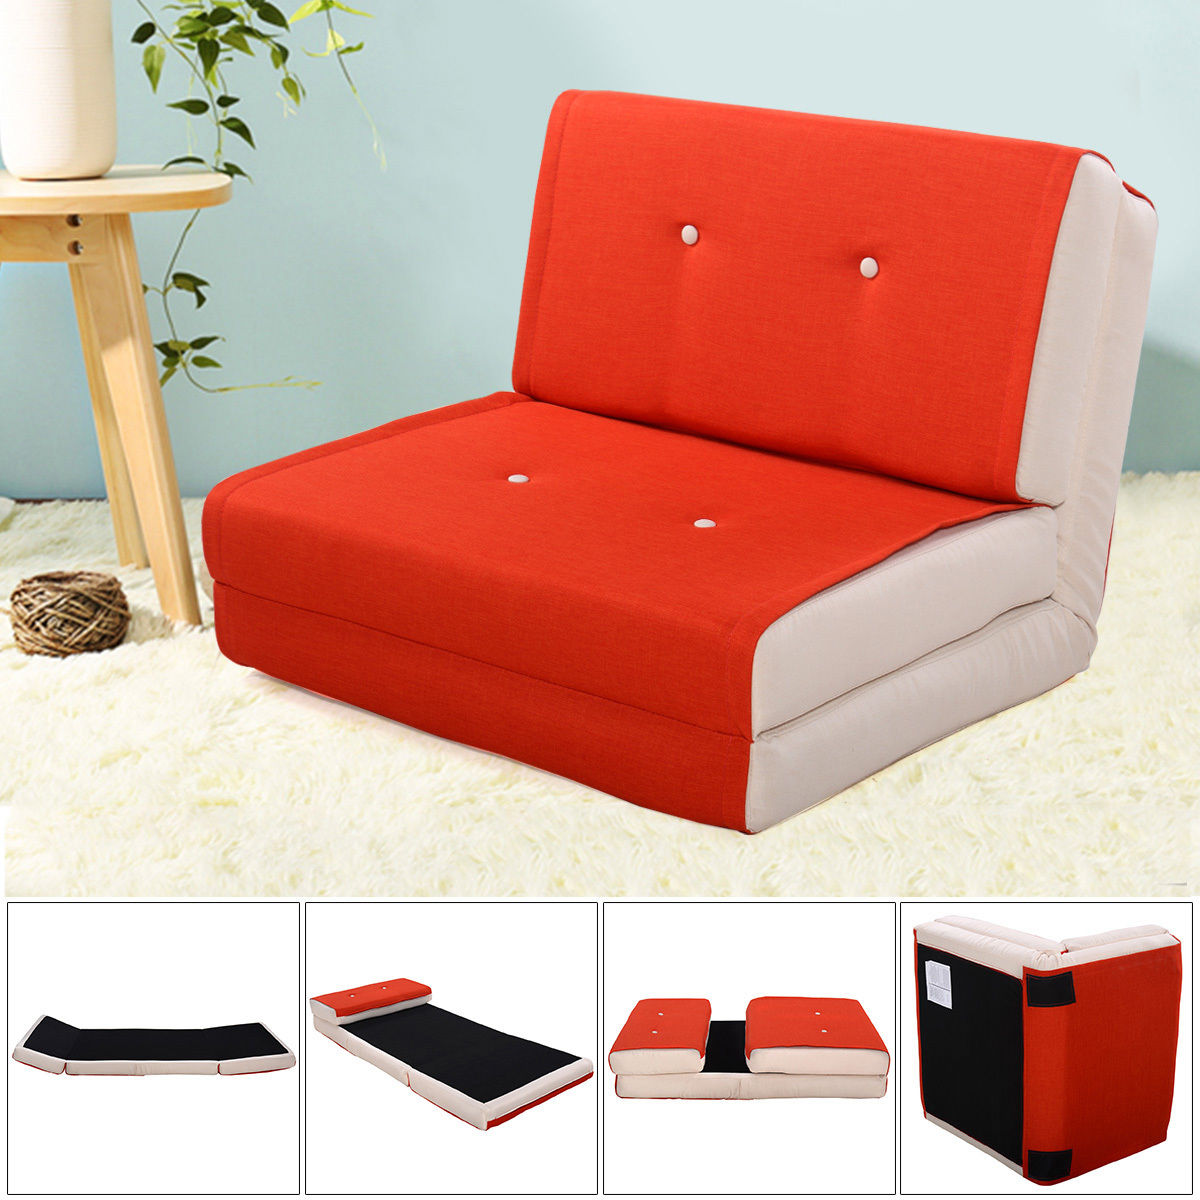 Giantex Folding Sofa Bed Modern Convertible Split-Back Linen Futon  Lovesear Sofa Chair Living Room Couch Recliner HW52681DKRE 2016 hot sale factory price hotel extra folding bed 12cm sponge rollaway beds for guest room roll away folding extra bed